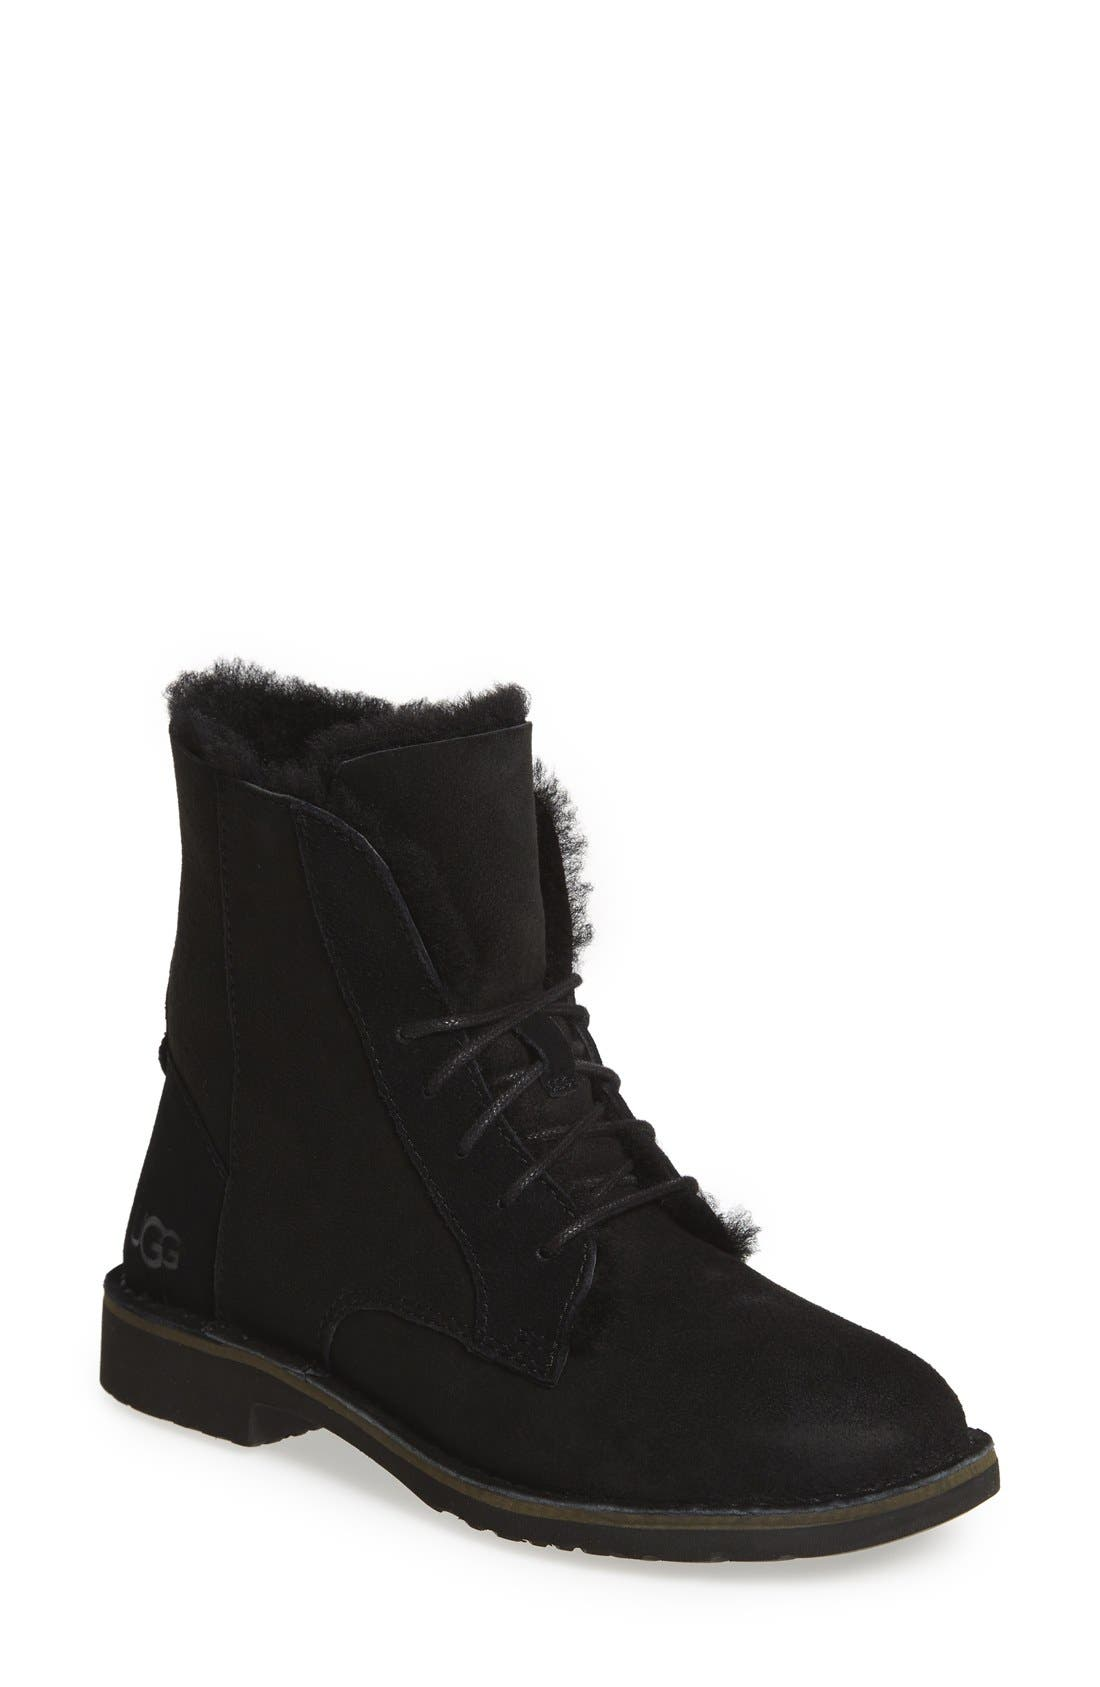 Main Image - UGG® Quincy Boot (Women)